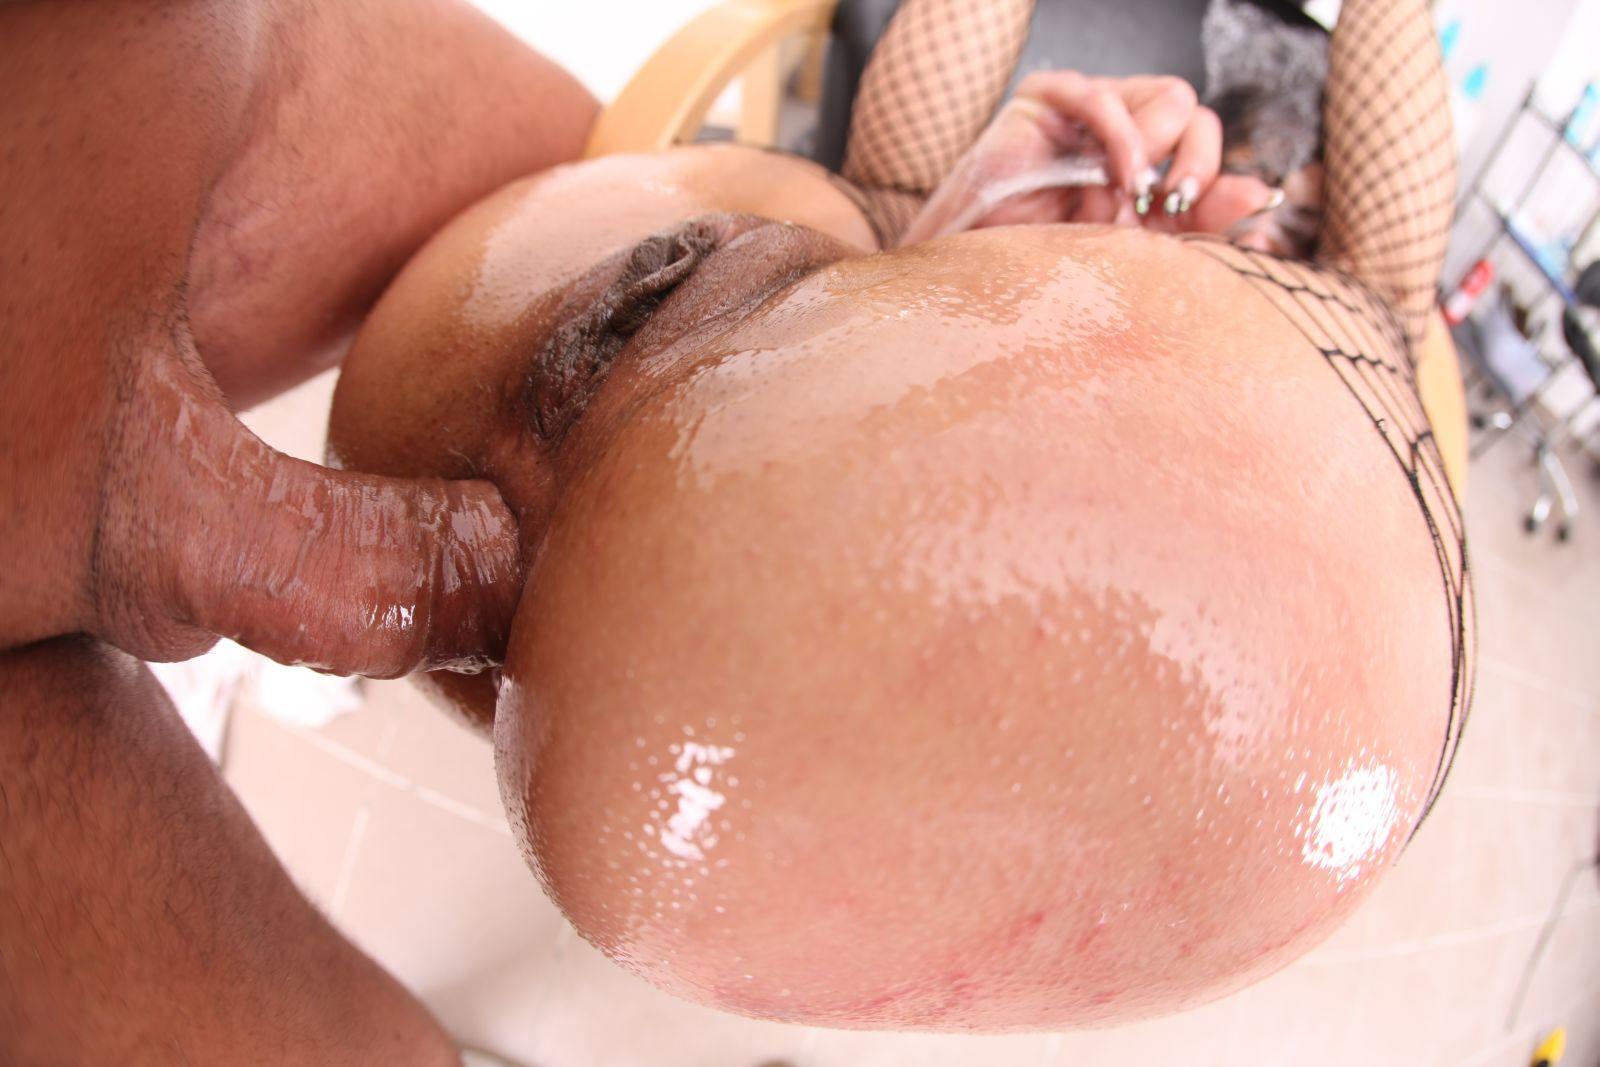 Red head handjob